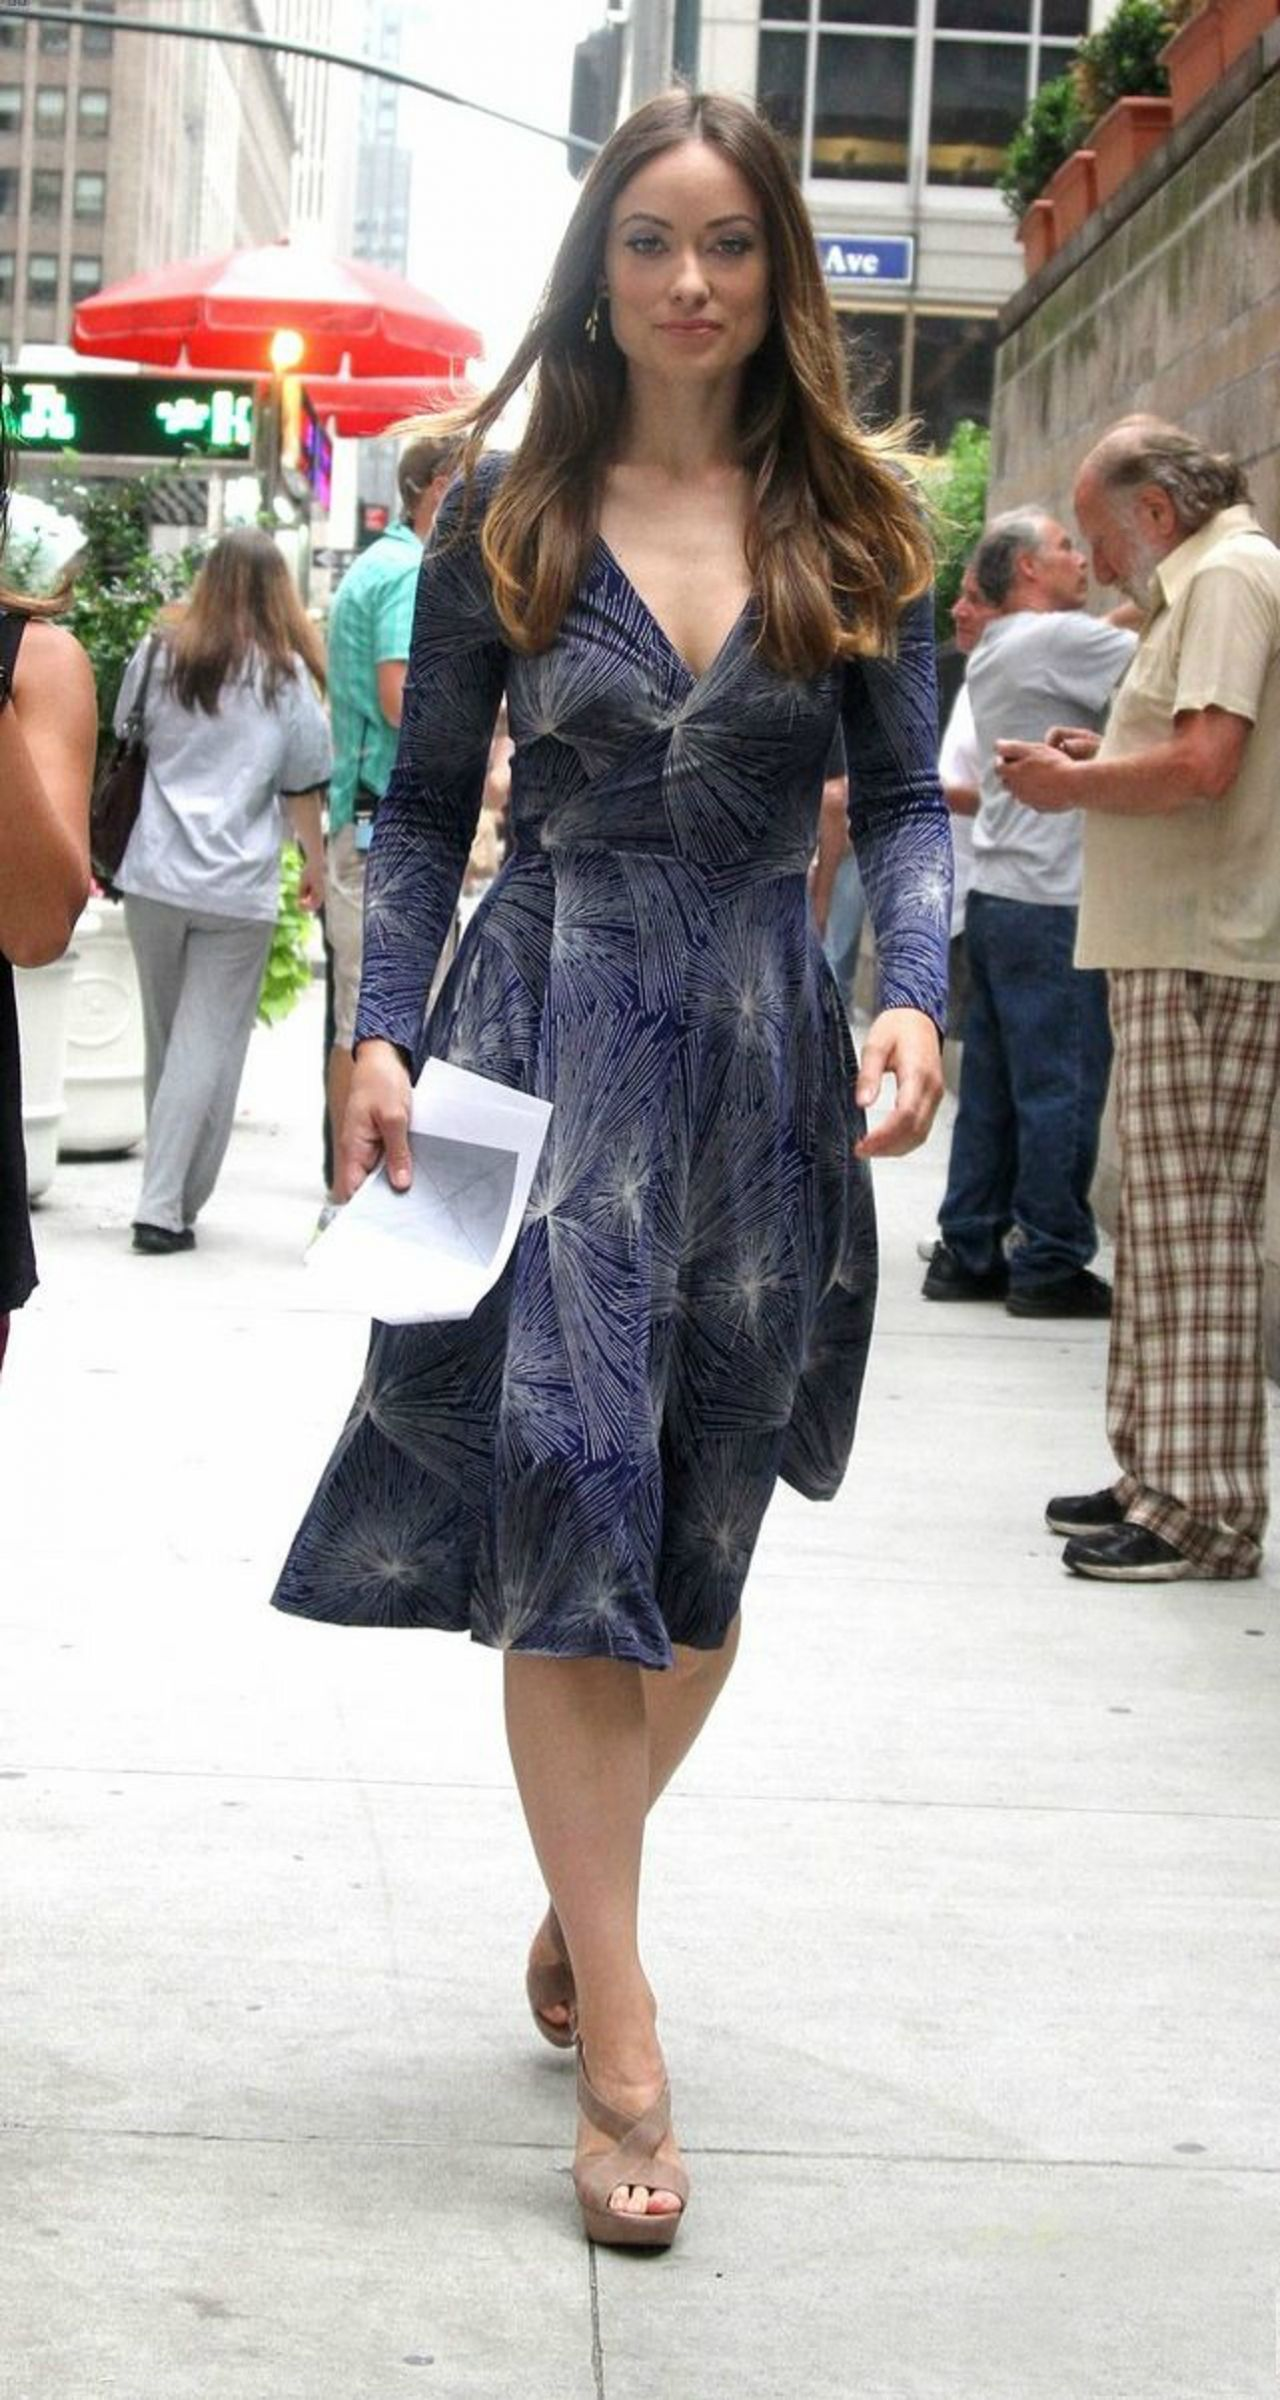 Olivia Wilde On The Sset Of An Untitled Hbo Series In New York 07 02 2015